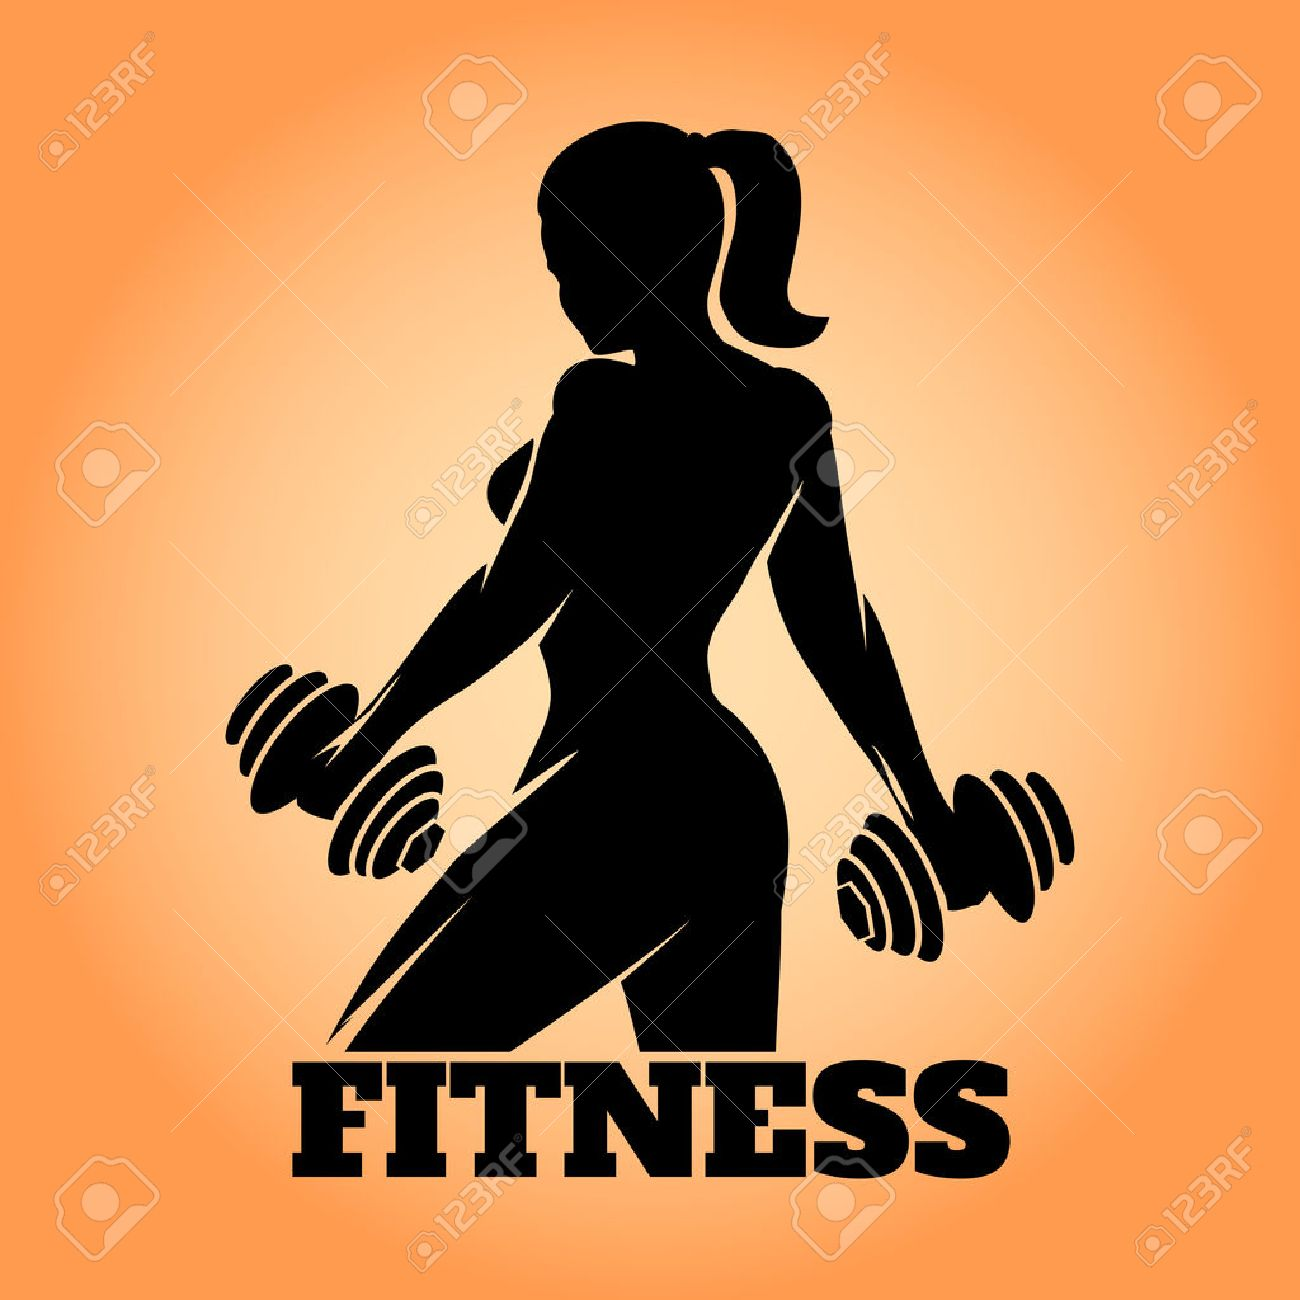 Fitness club and gym banner or poster design  Silhouette of athletic